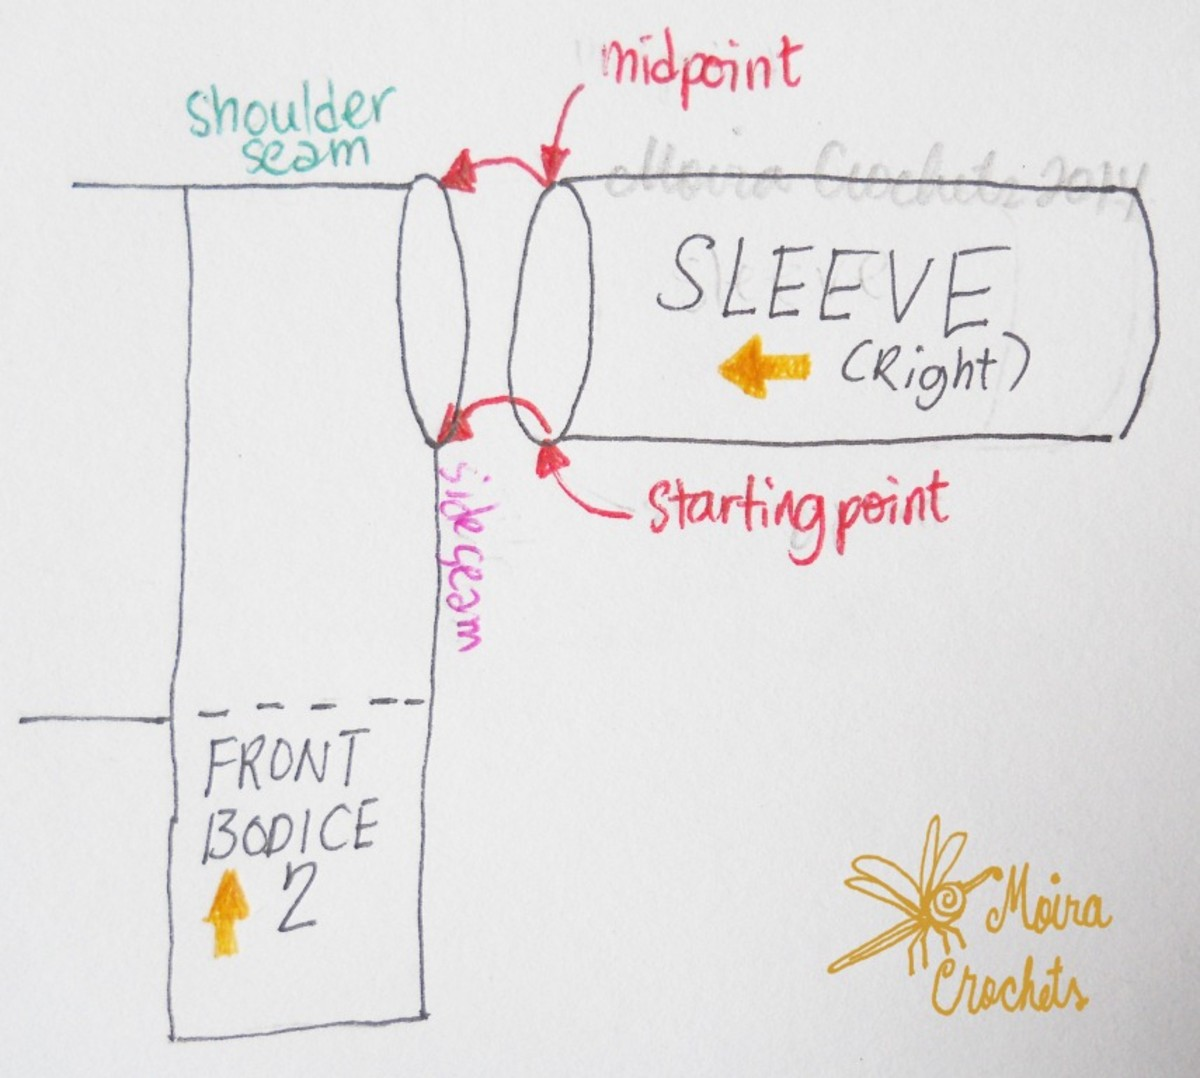 Close up on the diagram - the midpoint is pinned to the shoulder seam while the starting point is pinned to the side seam.